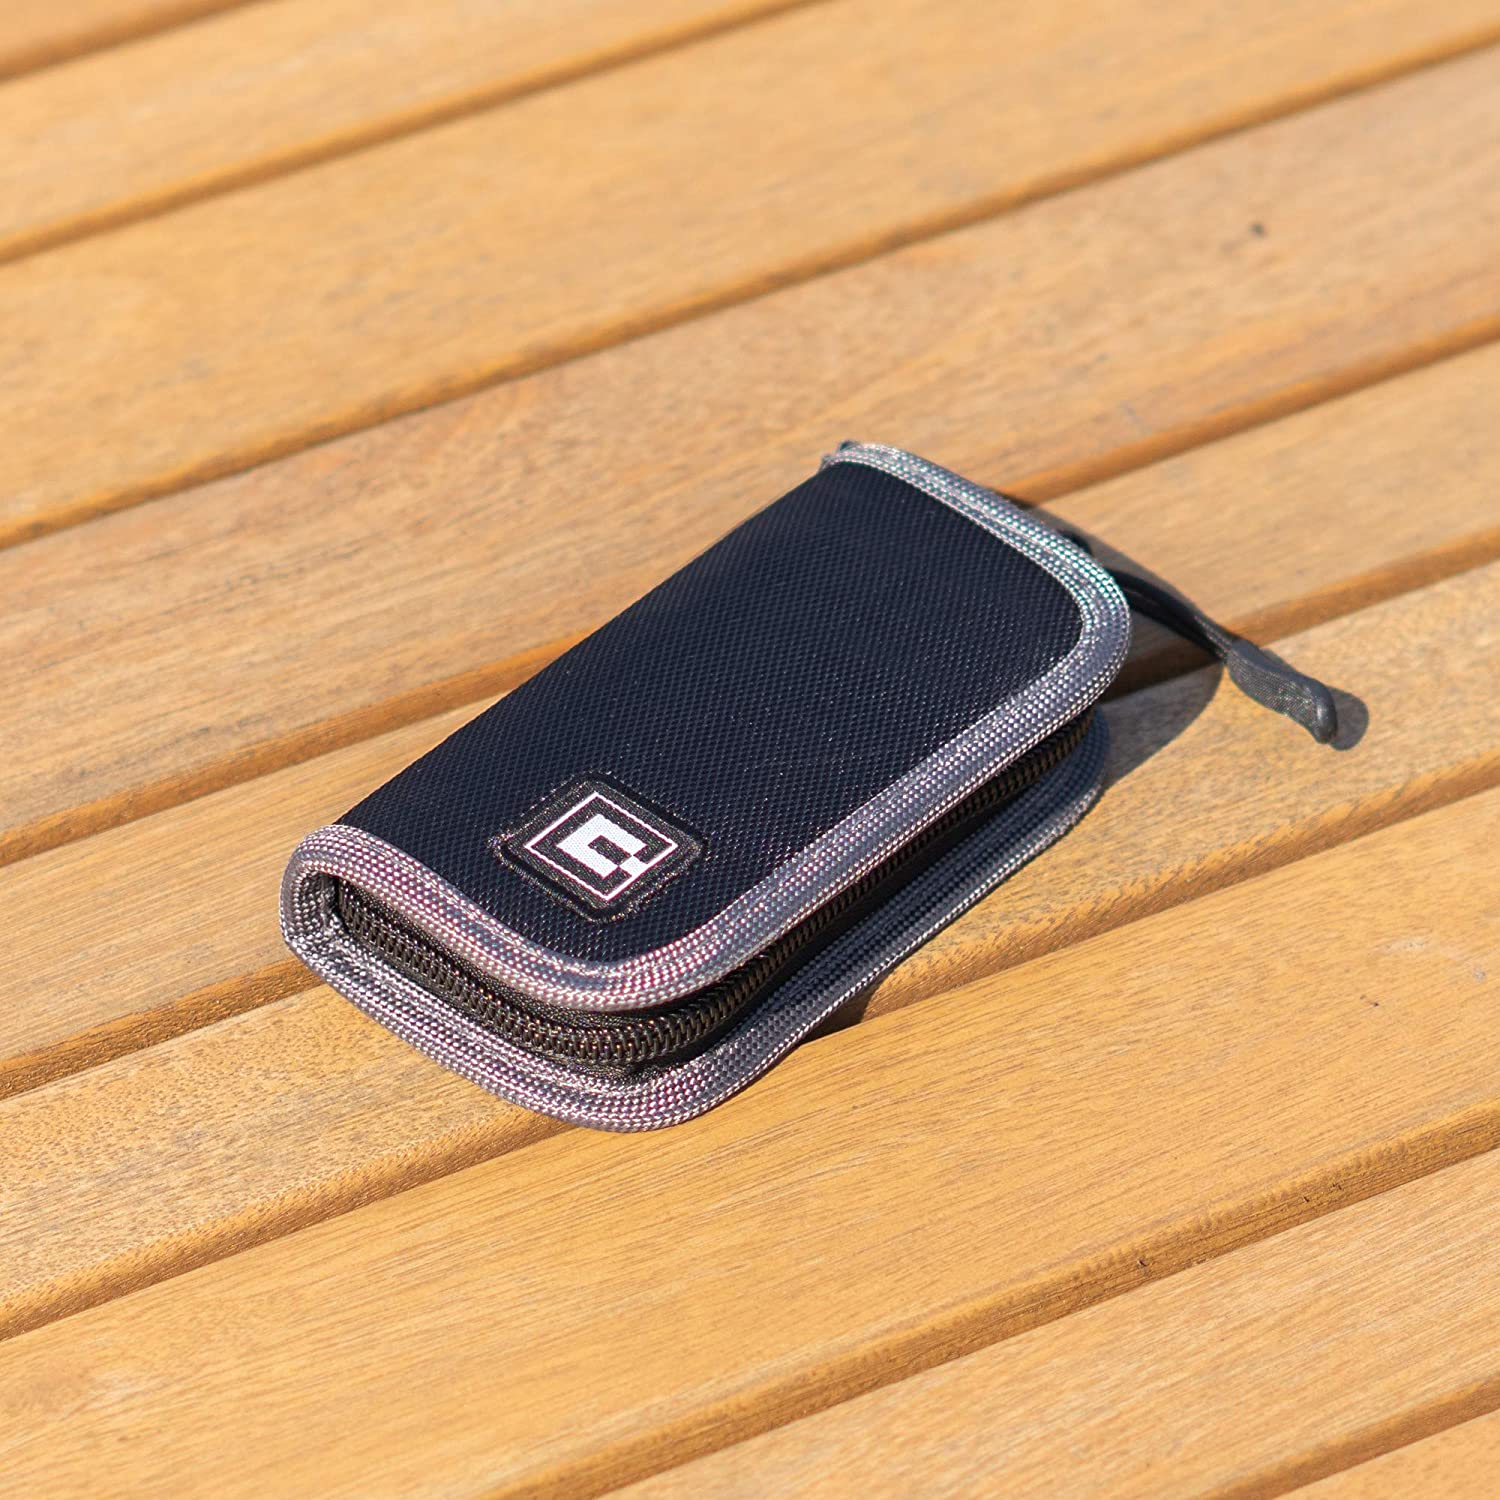 Pods and Charger Carrying Case Wallet Holder for JUUL and Other Popular Vapes Device Not Included Holds Vape Fits in Pockets or Bags